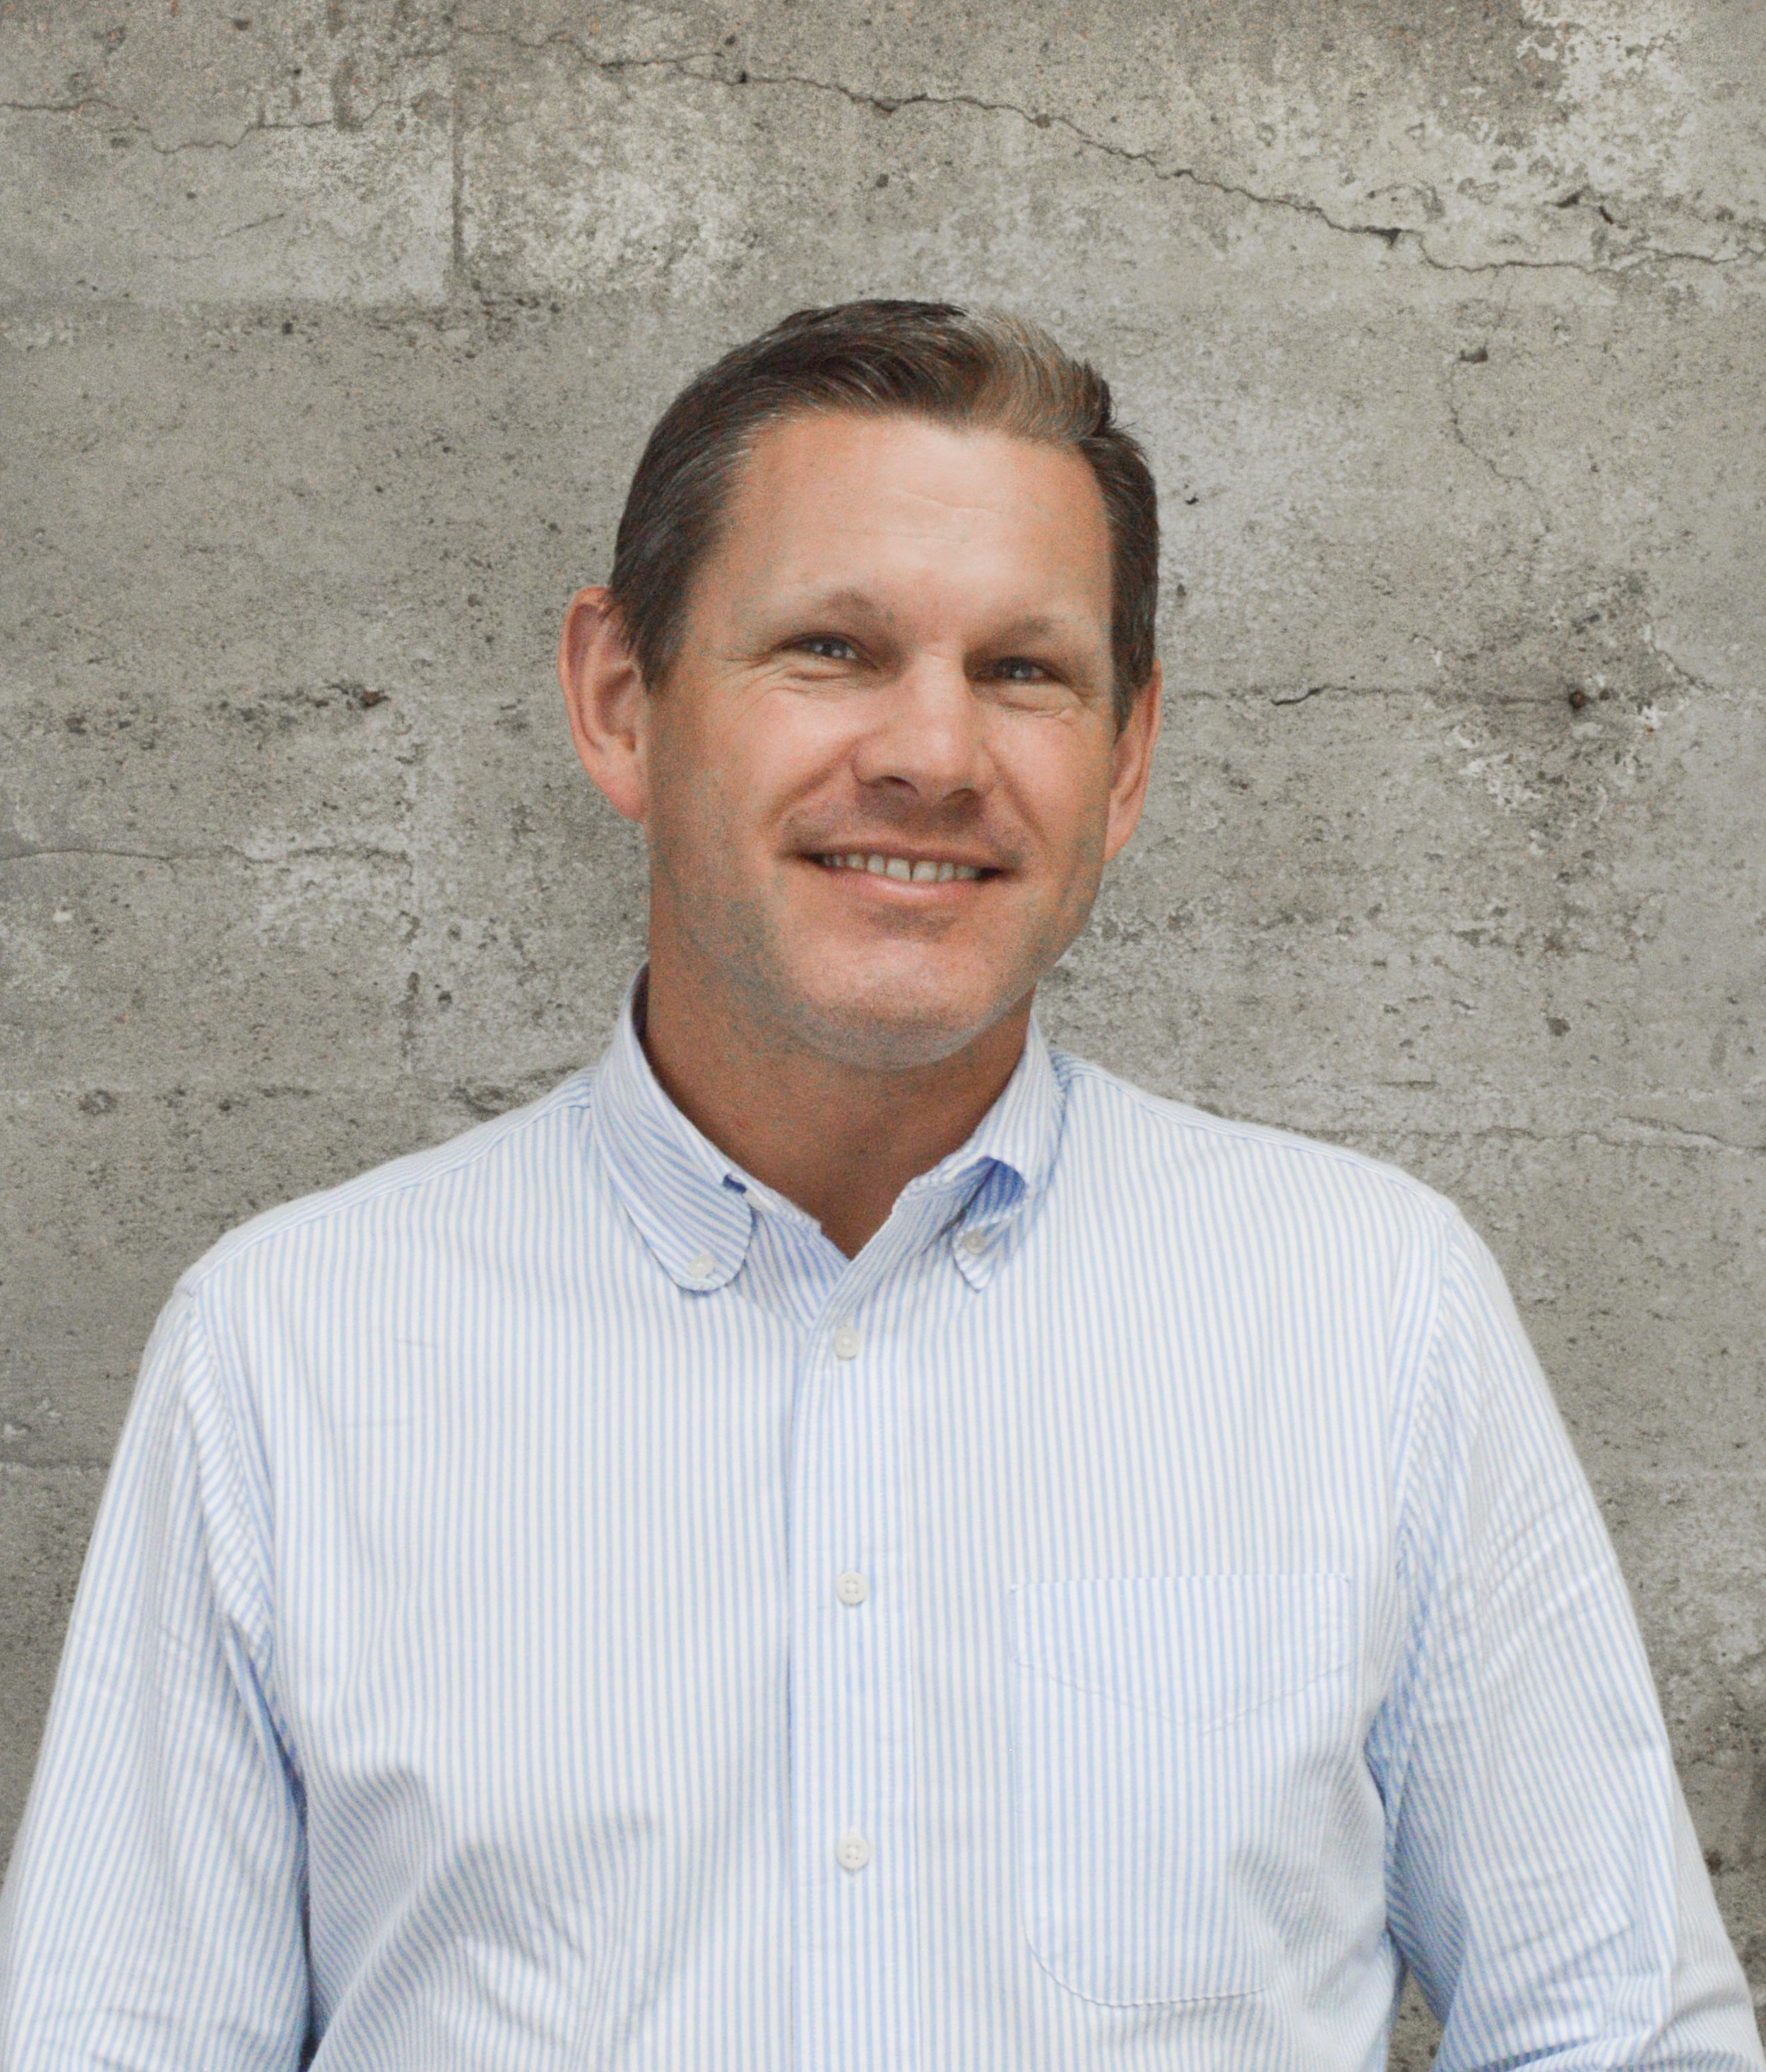 Mark Dietrich |  Project Architect